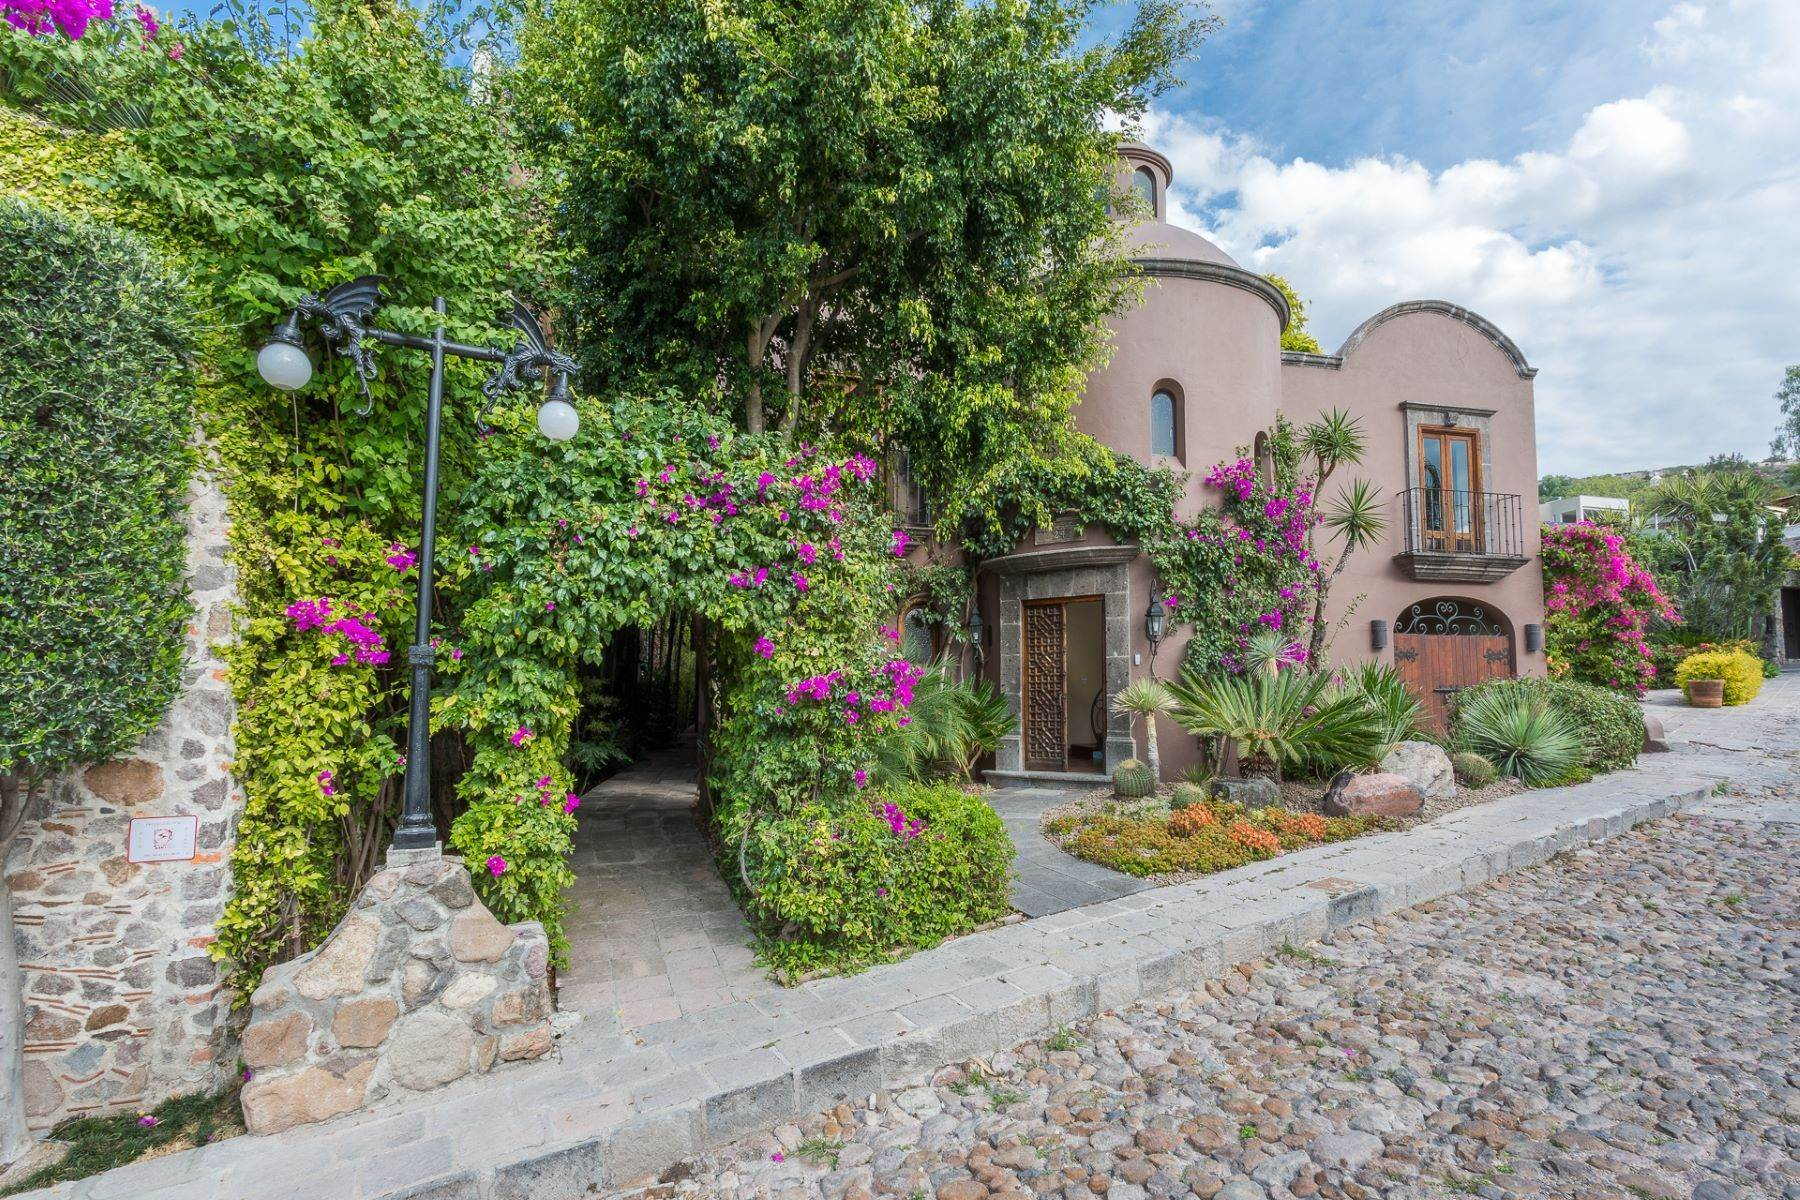 Single Family Homes for Sale at Casa del Parque Villas del parque 24 San Miguel De Allende, Guanajuato 37700 Mexico